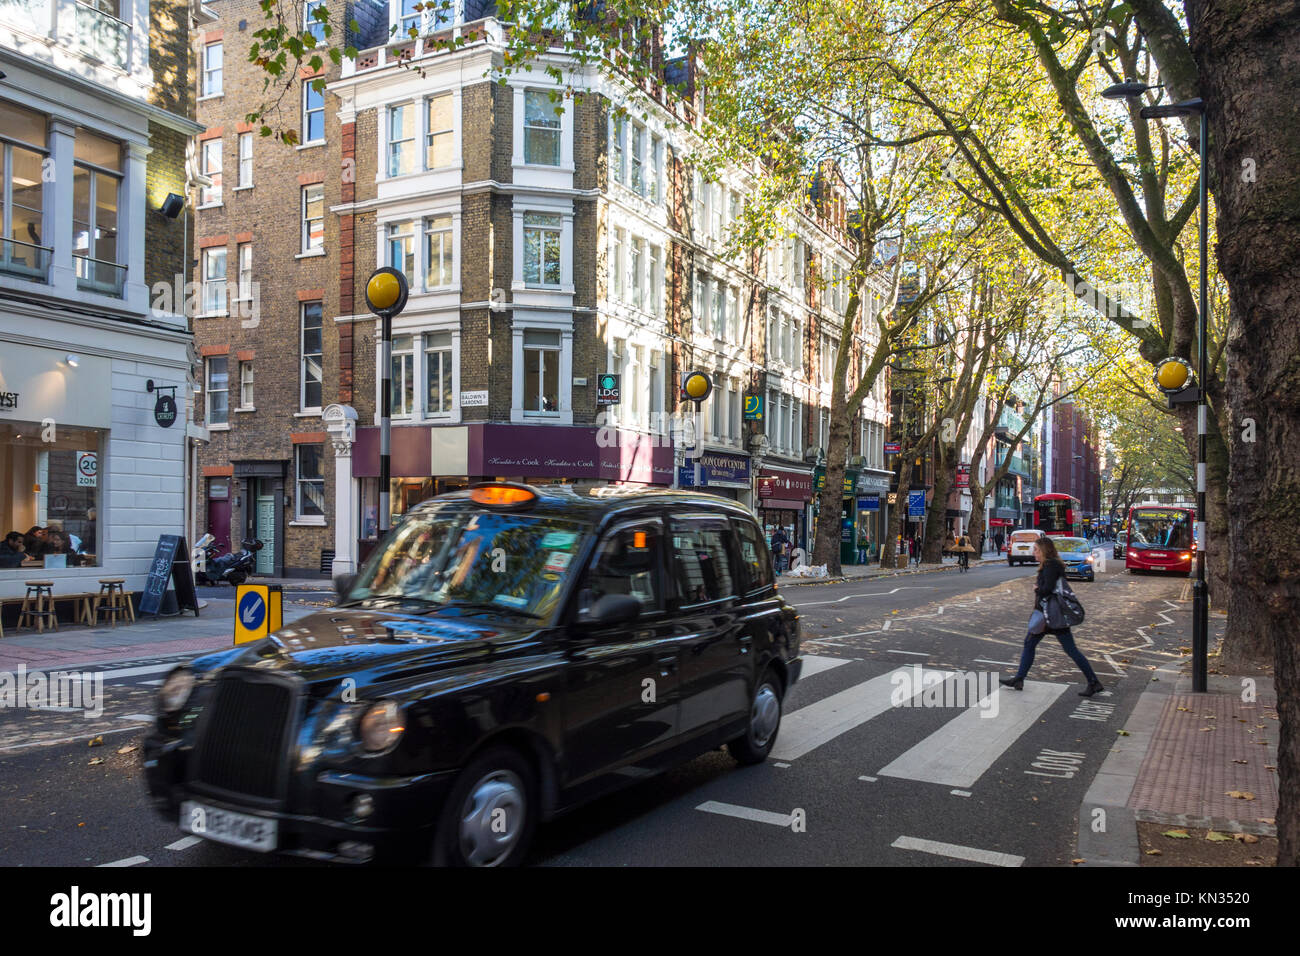 London black cab taxi at a pedestrian crossing on Grey's Inn Road, Holborn, London - Stock Image